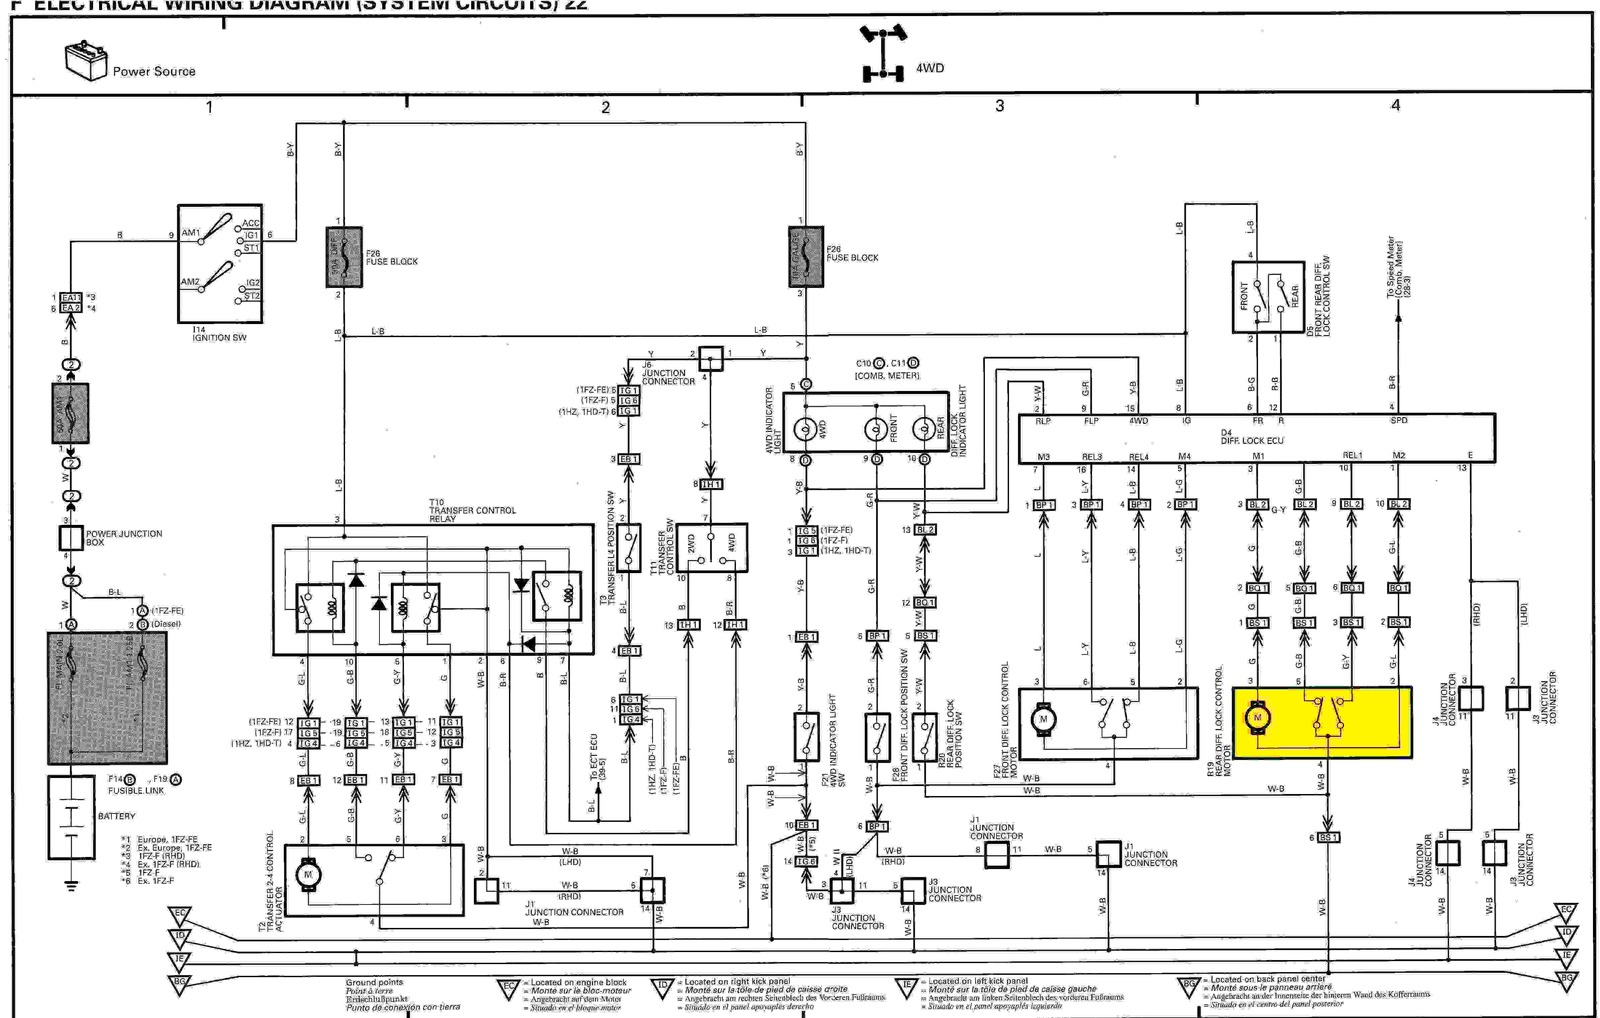 1hd fte wiring diagram toyota landcruiser 80 series wiring diagram Chevy Starter Wiring Diagram at soozxer.org